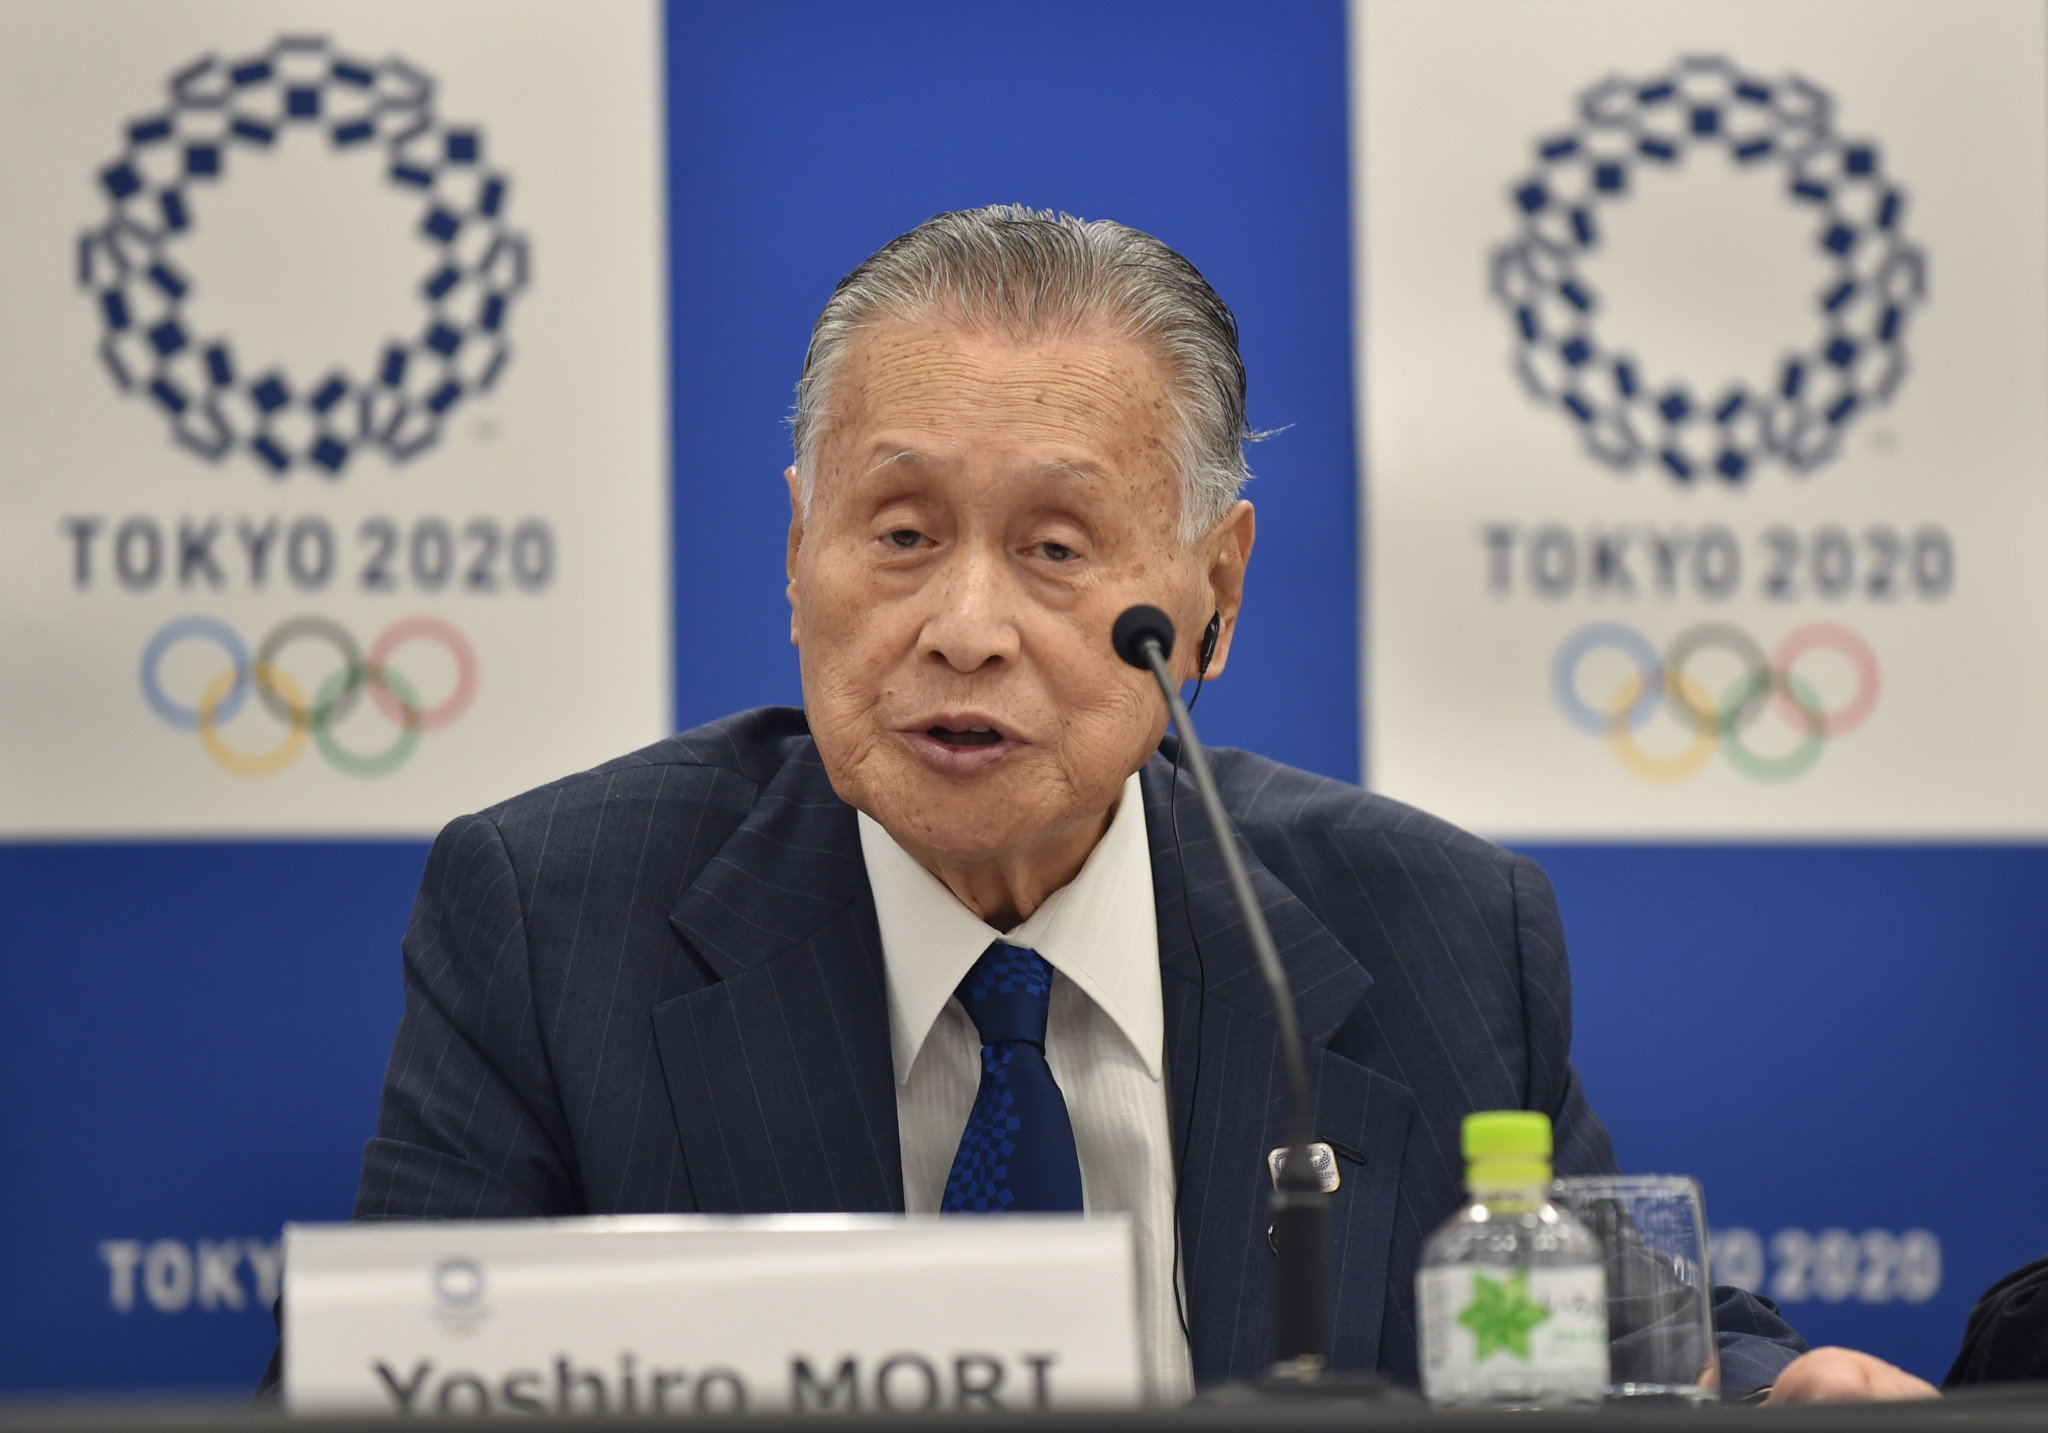 Tokyo 2020 President Yoshirō Mori welcomed the addition of KOKUYO ©Getty Images